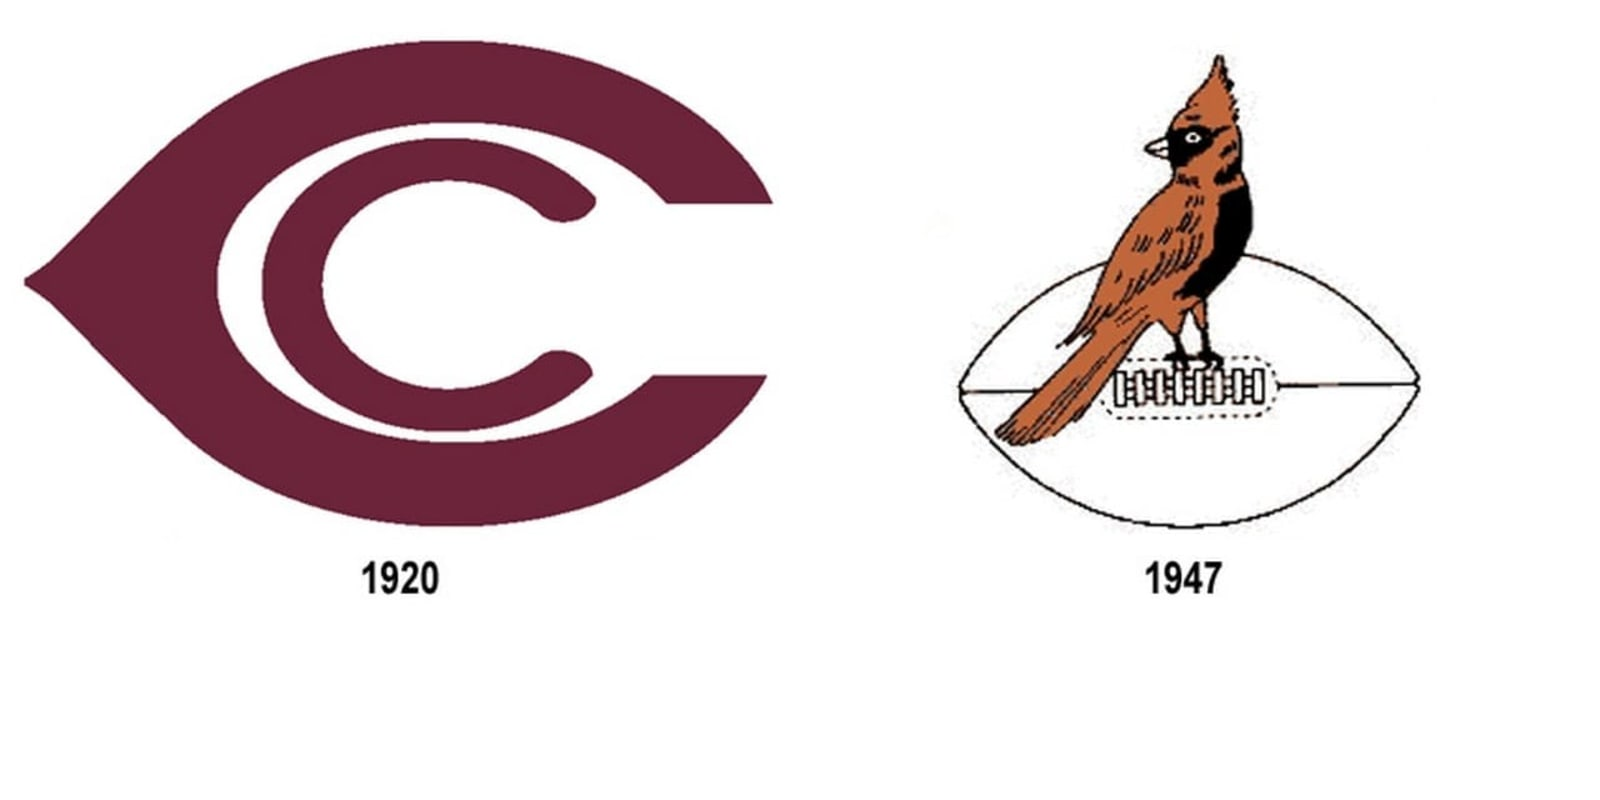 Chicago Cardinals primary and secondary logos